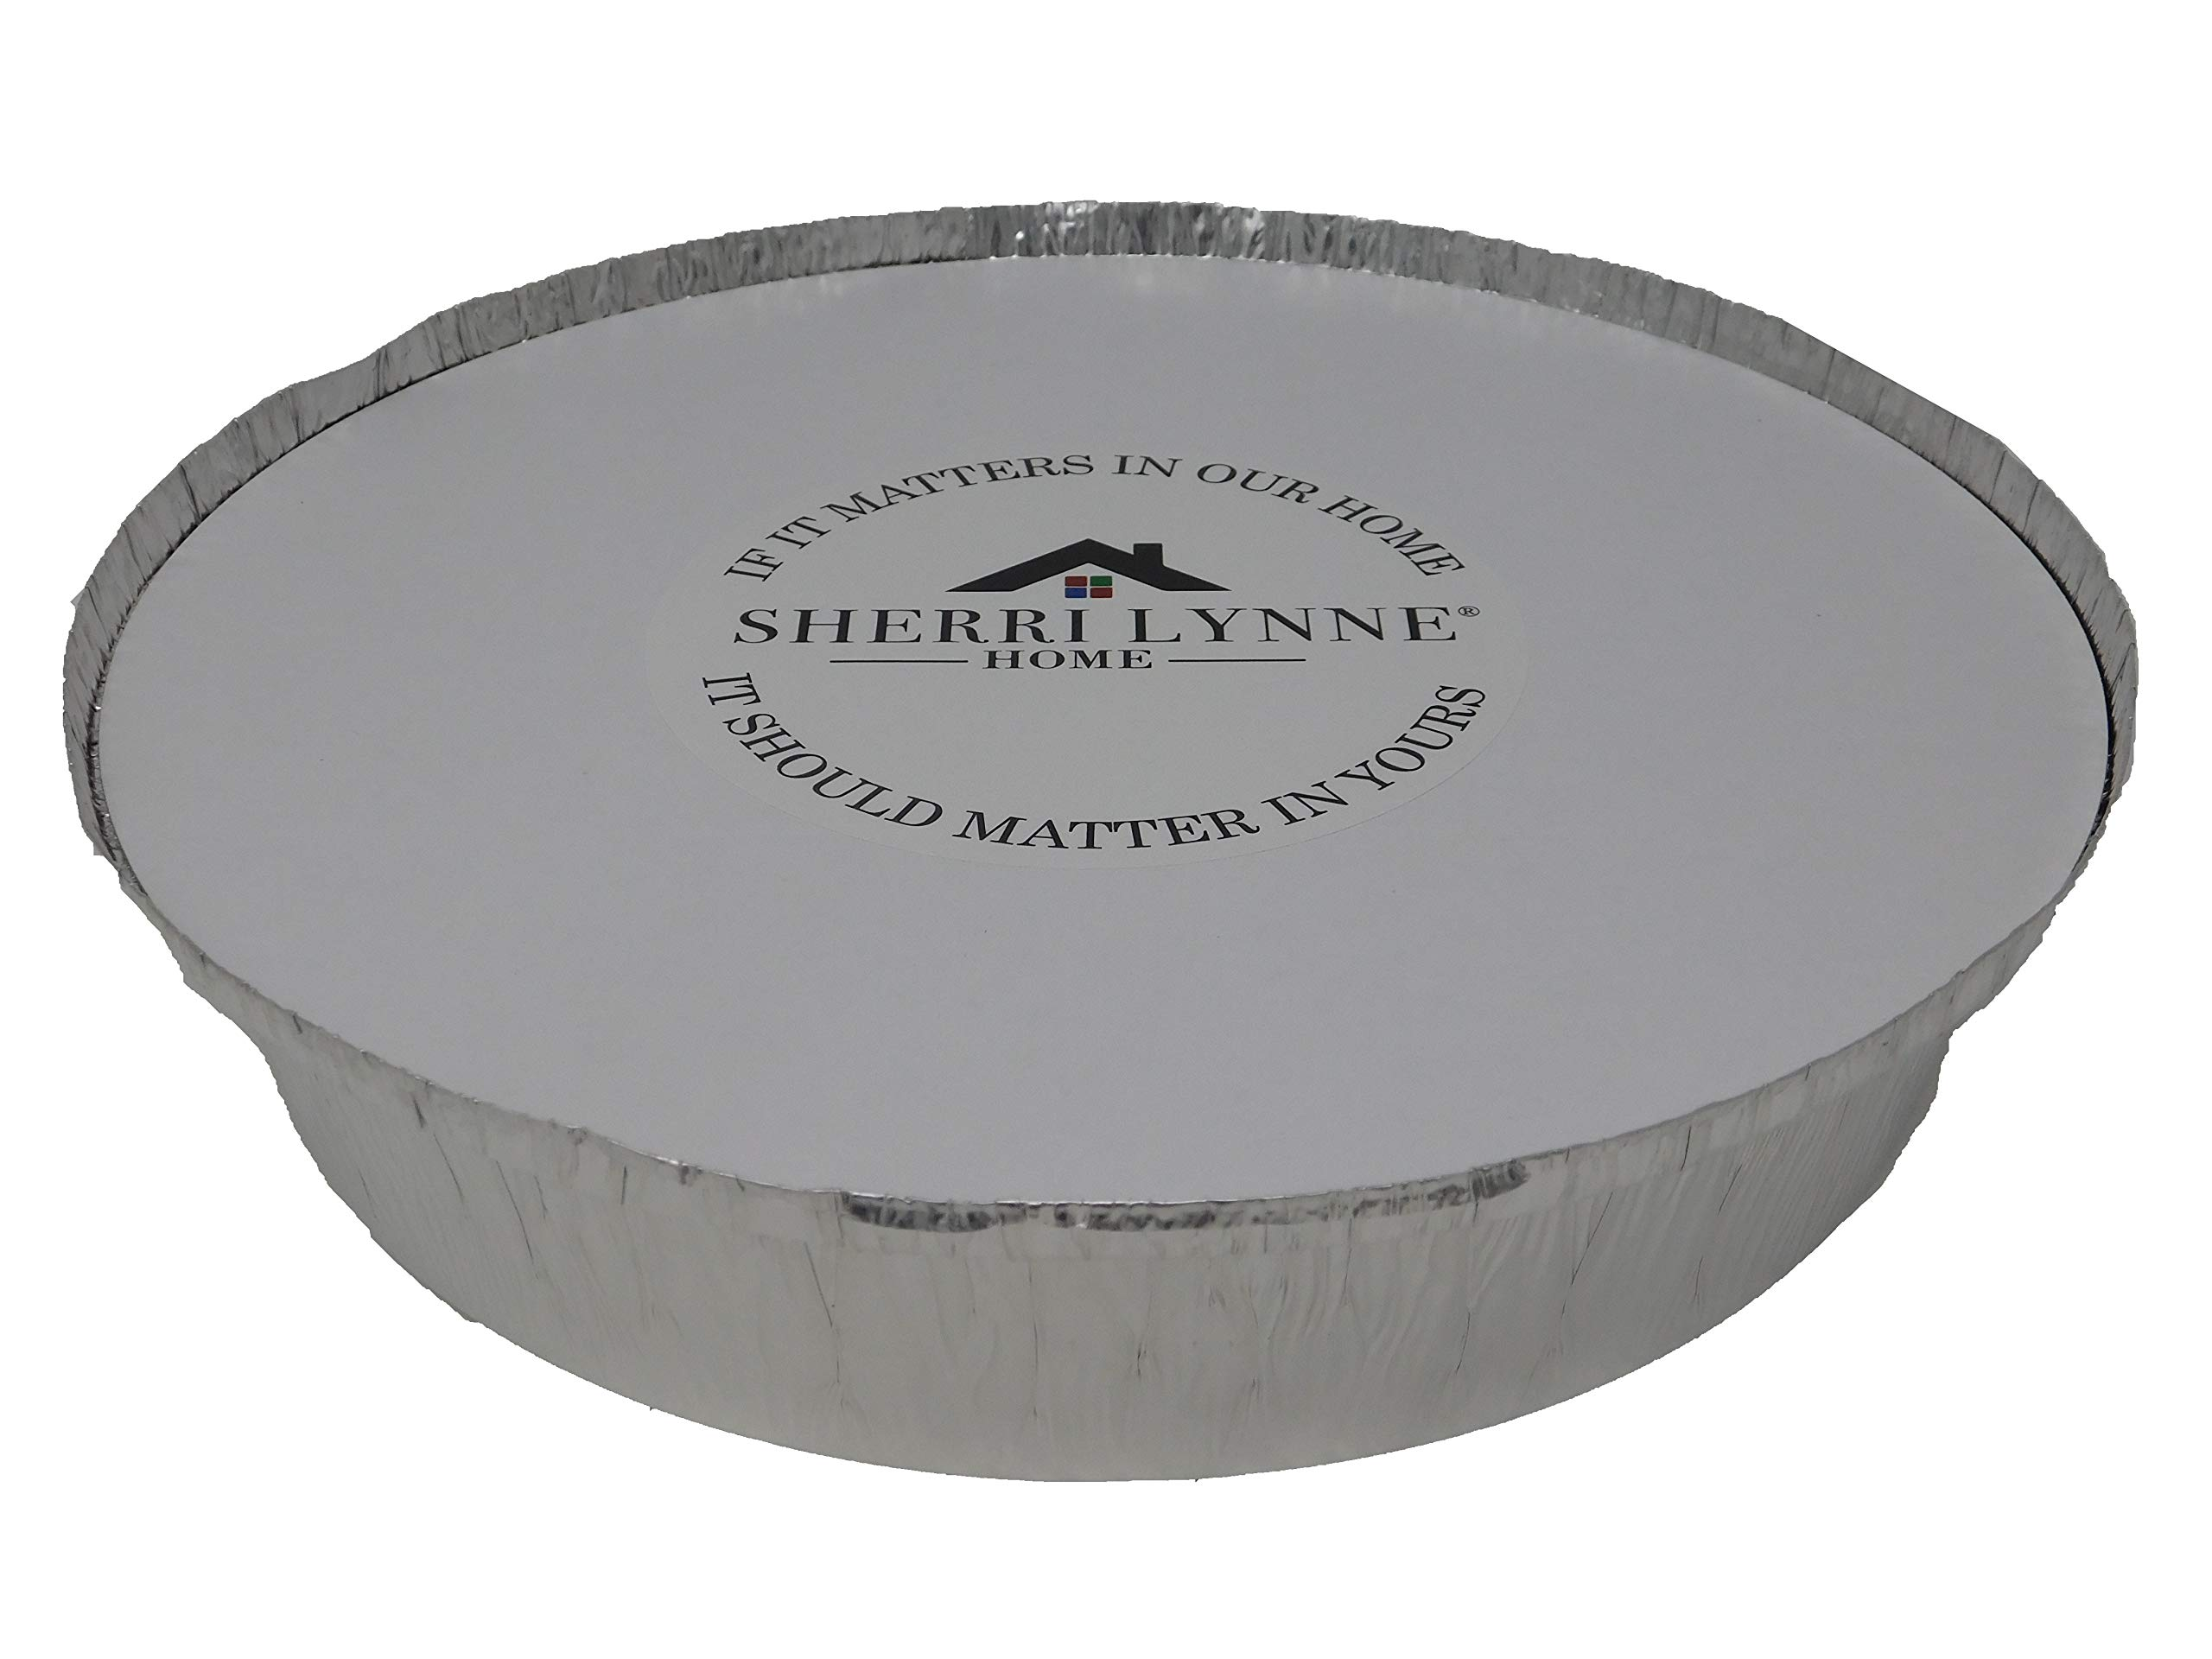 Sherri Lynne Home Round Pans - 9'' Disposable Aluminum Foil Pans With Board Lids, for Baking, Roasting, Broiling, and Cooking, 9 X 1.75 Inches, Popular Pan Size for Baking Cakes and Quiches, Pack of 25